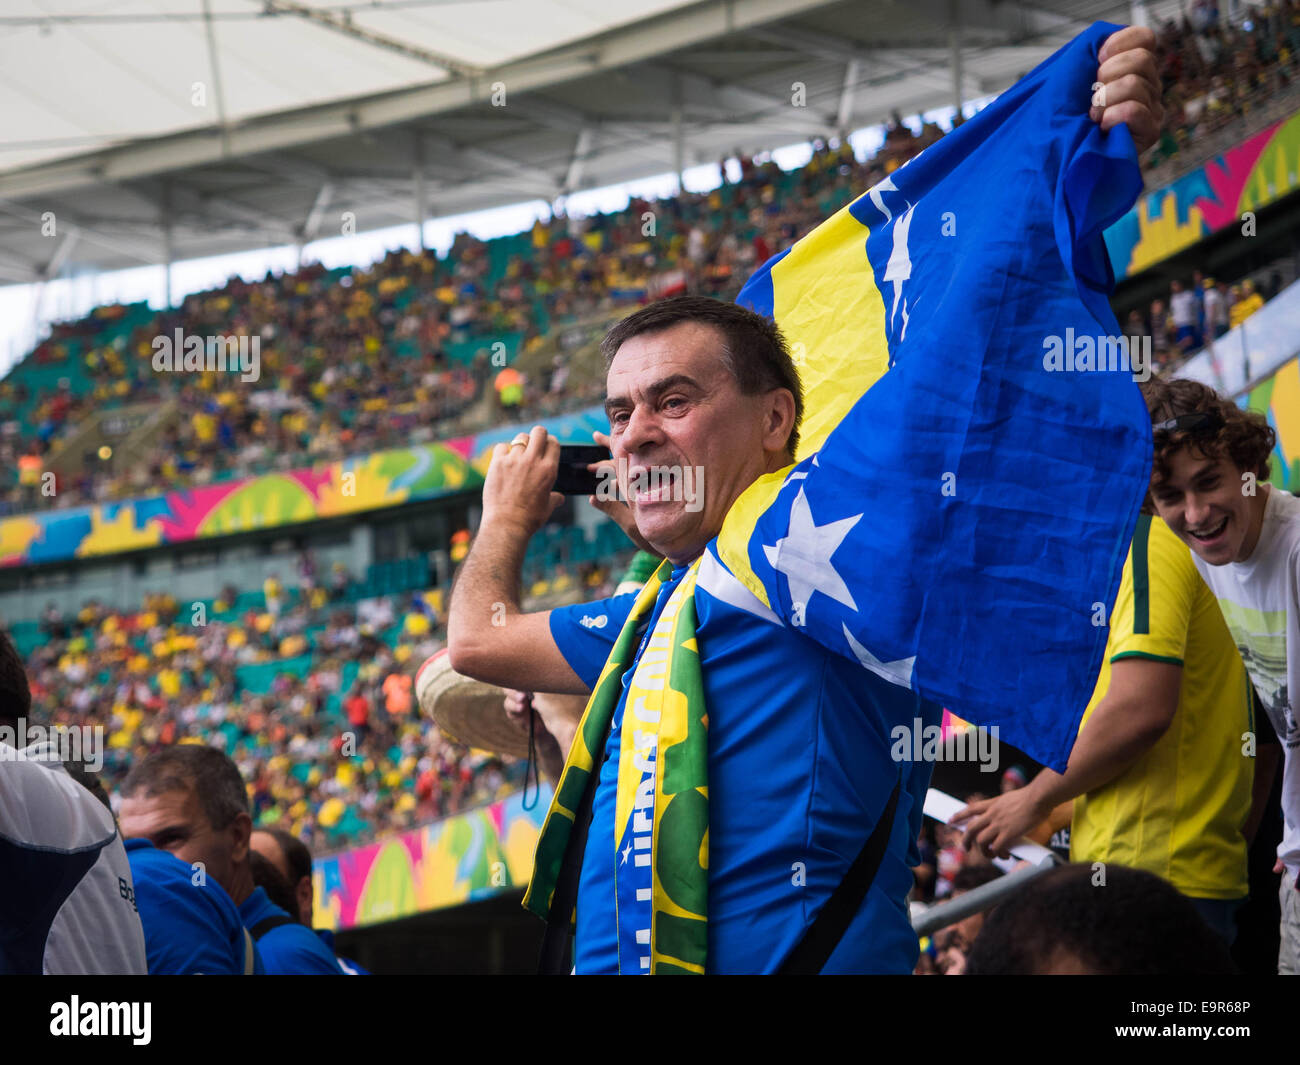 Bosnia and Herzegovina fan celebrating victory against Iran at World Cup match at Fonte Nova stadium in Salvador, - Stock Image